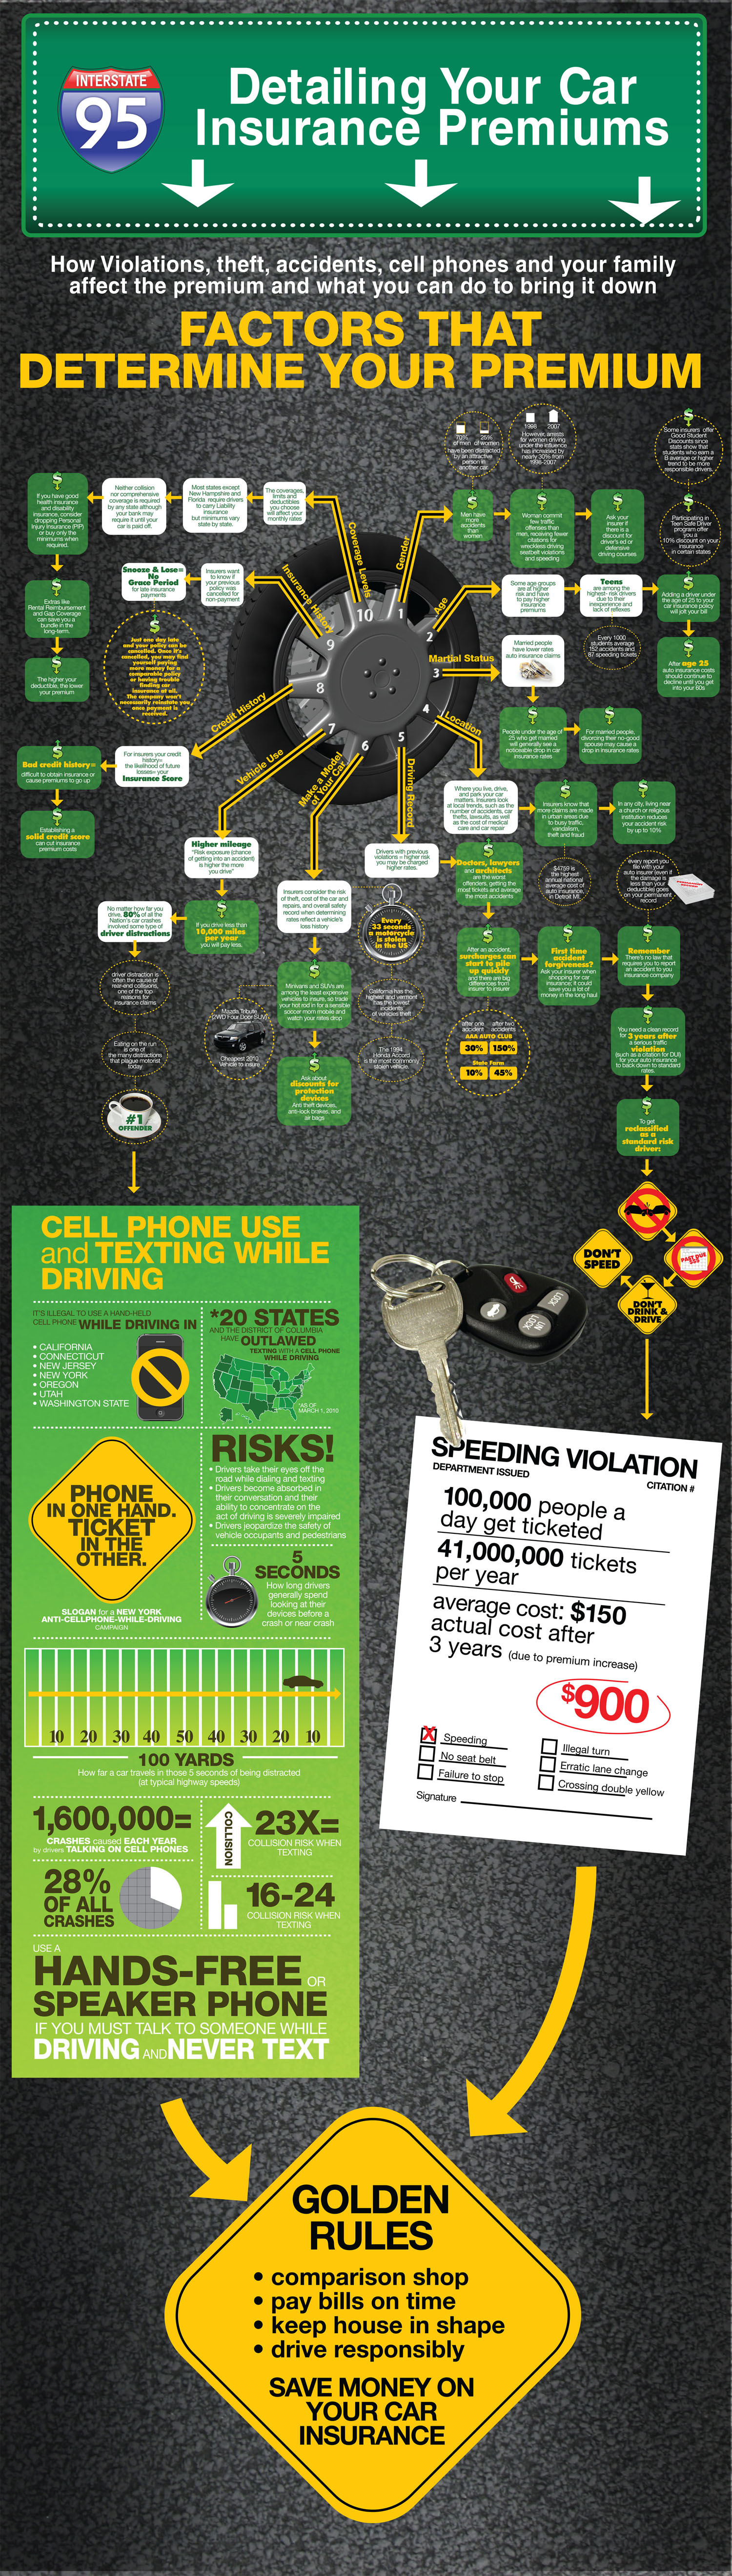 Detailing Your Car Insurance Premiums Infographic